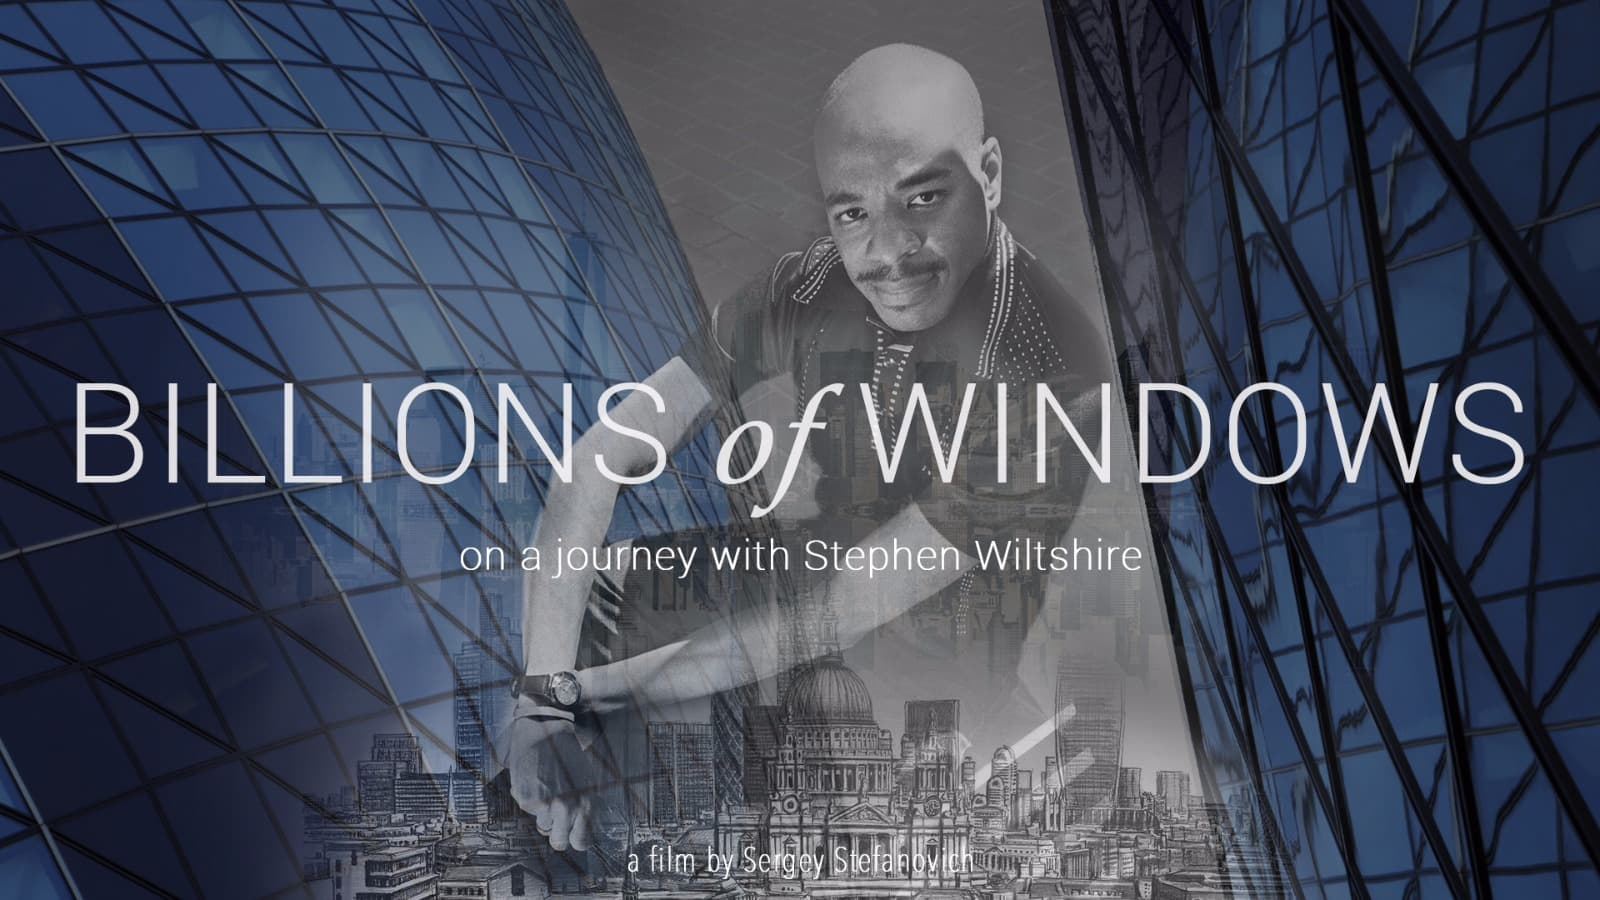 Billions of Windows - On a journey with Stephen Wiltshire